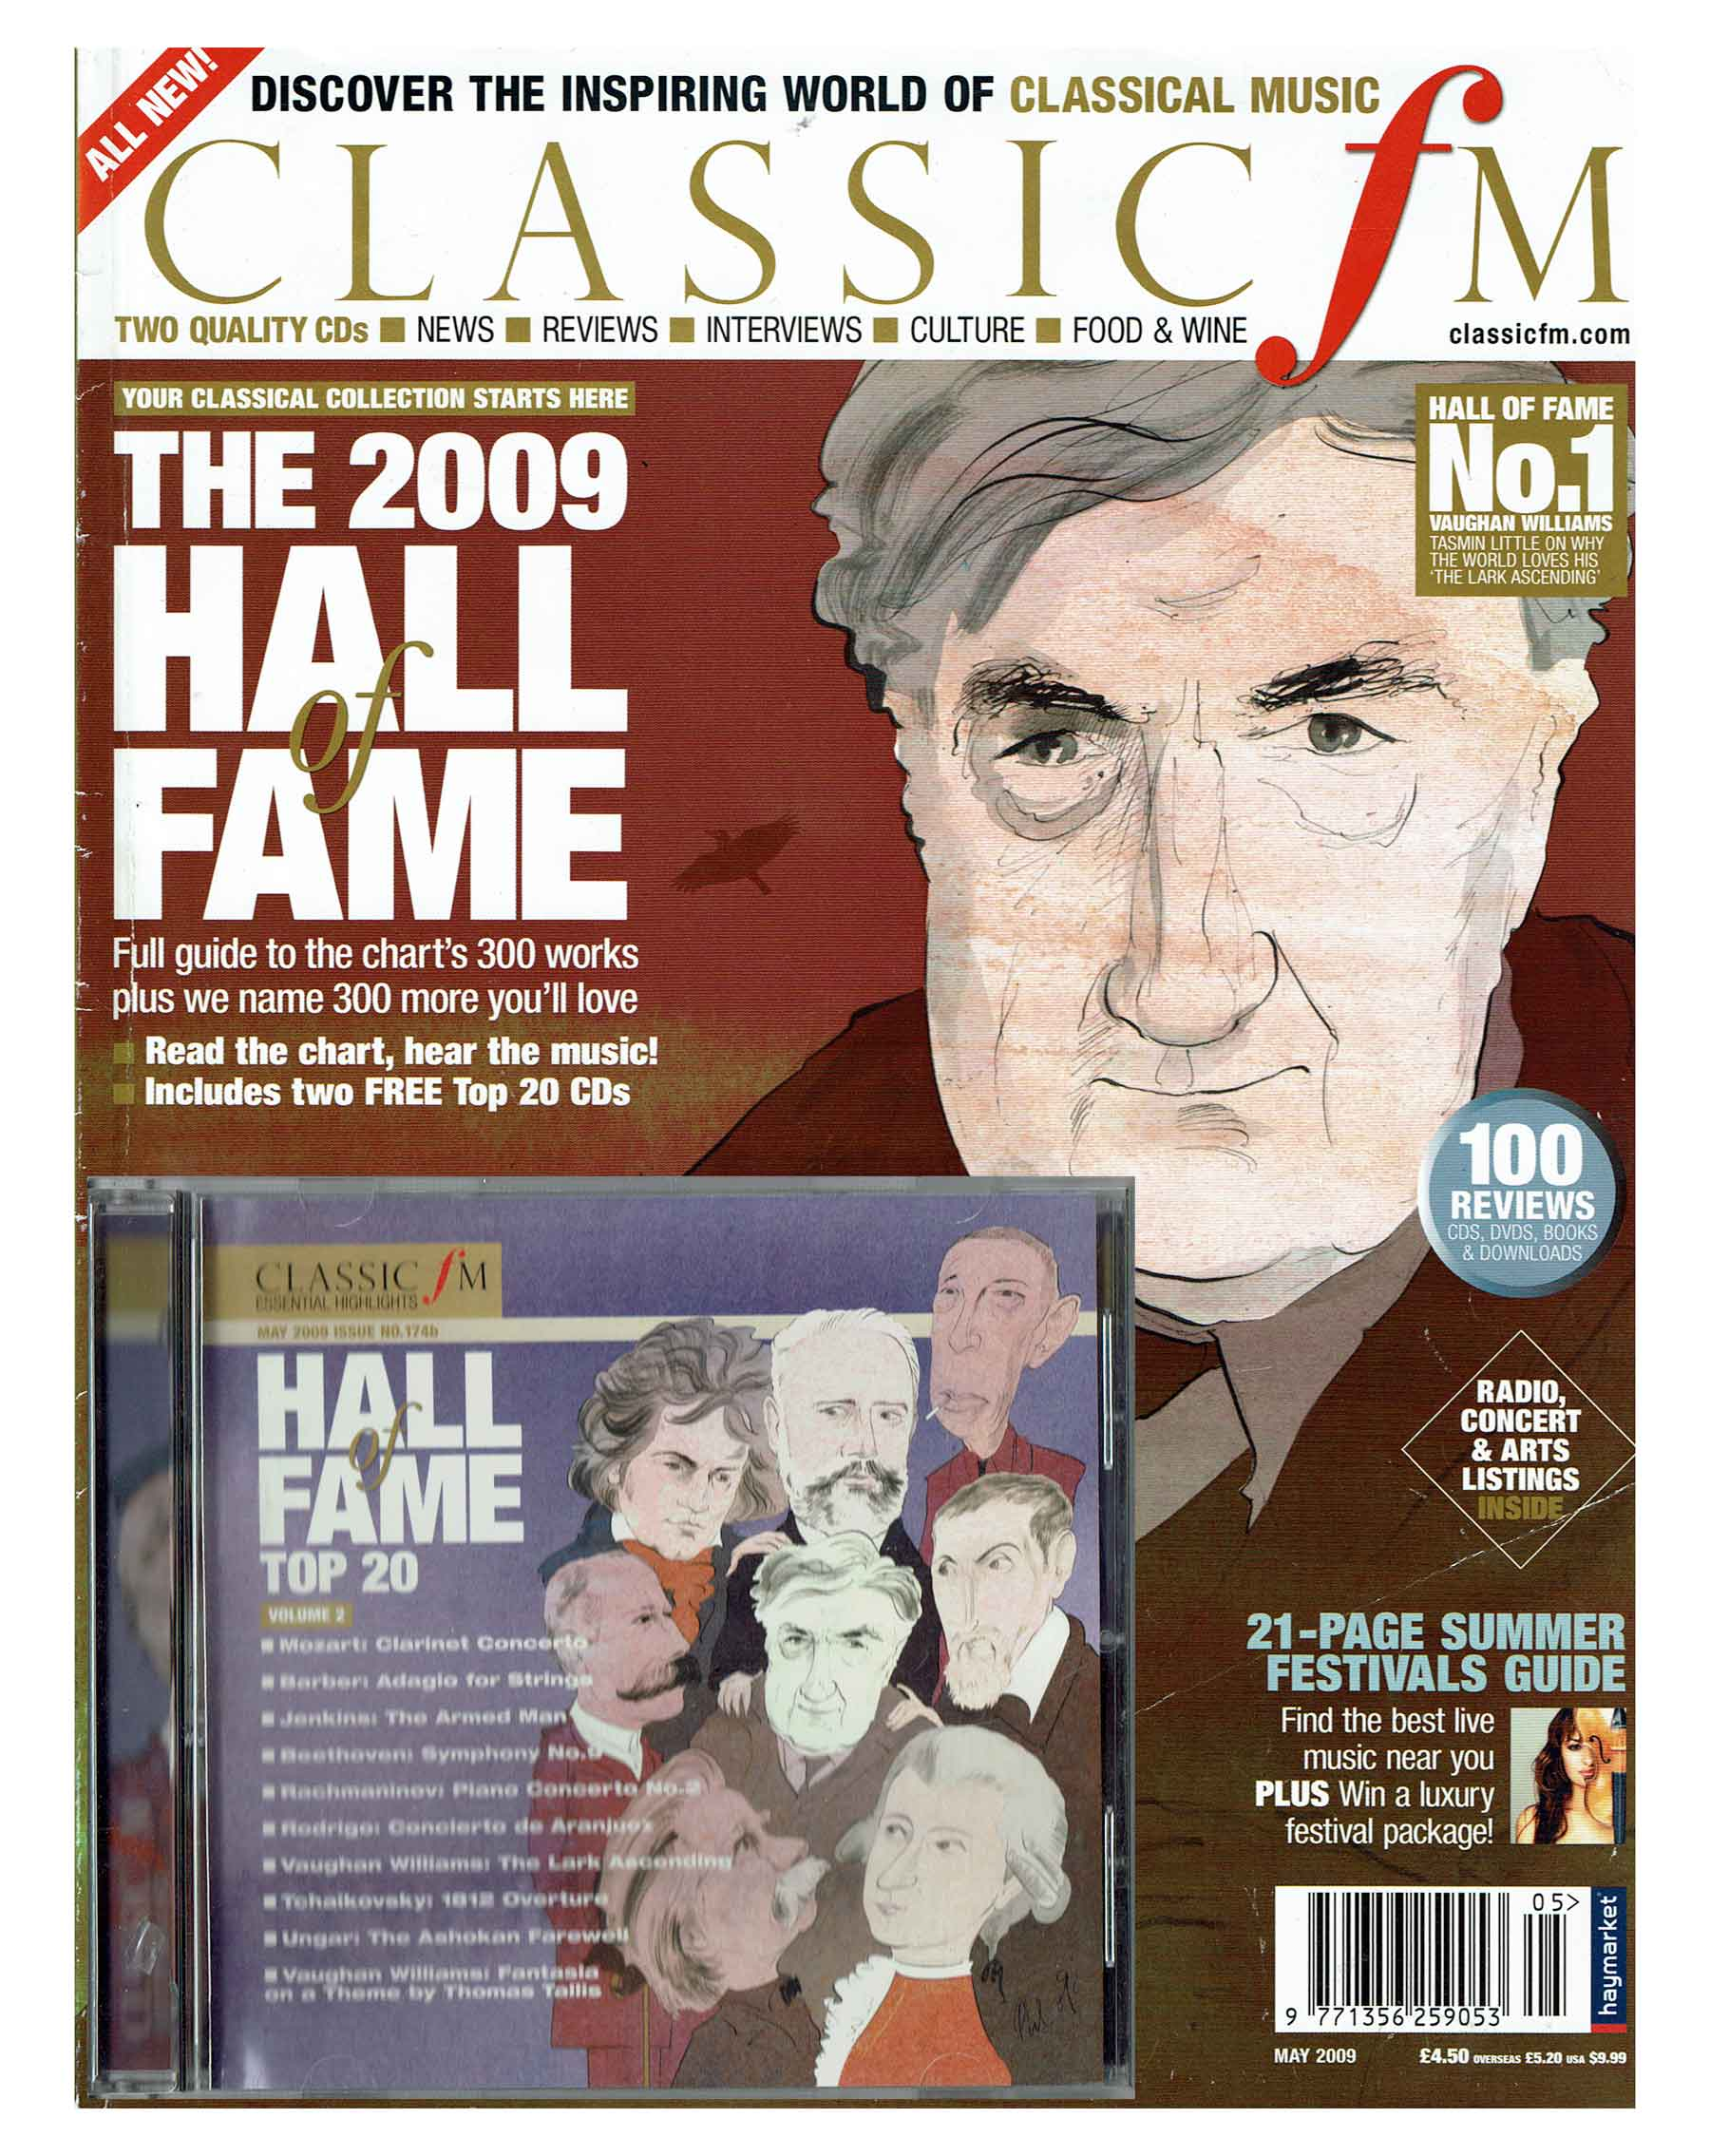 Phil Disley / Hall of Fame / Classic FM